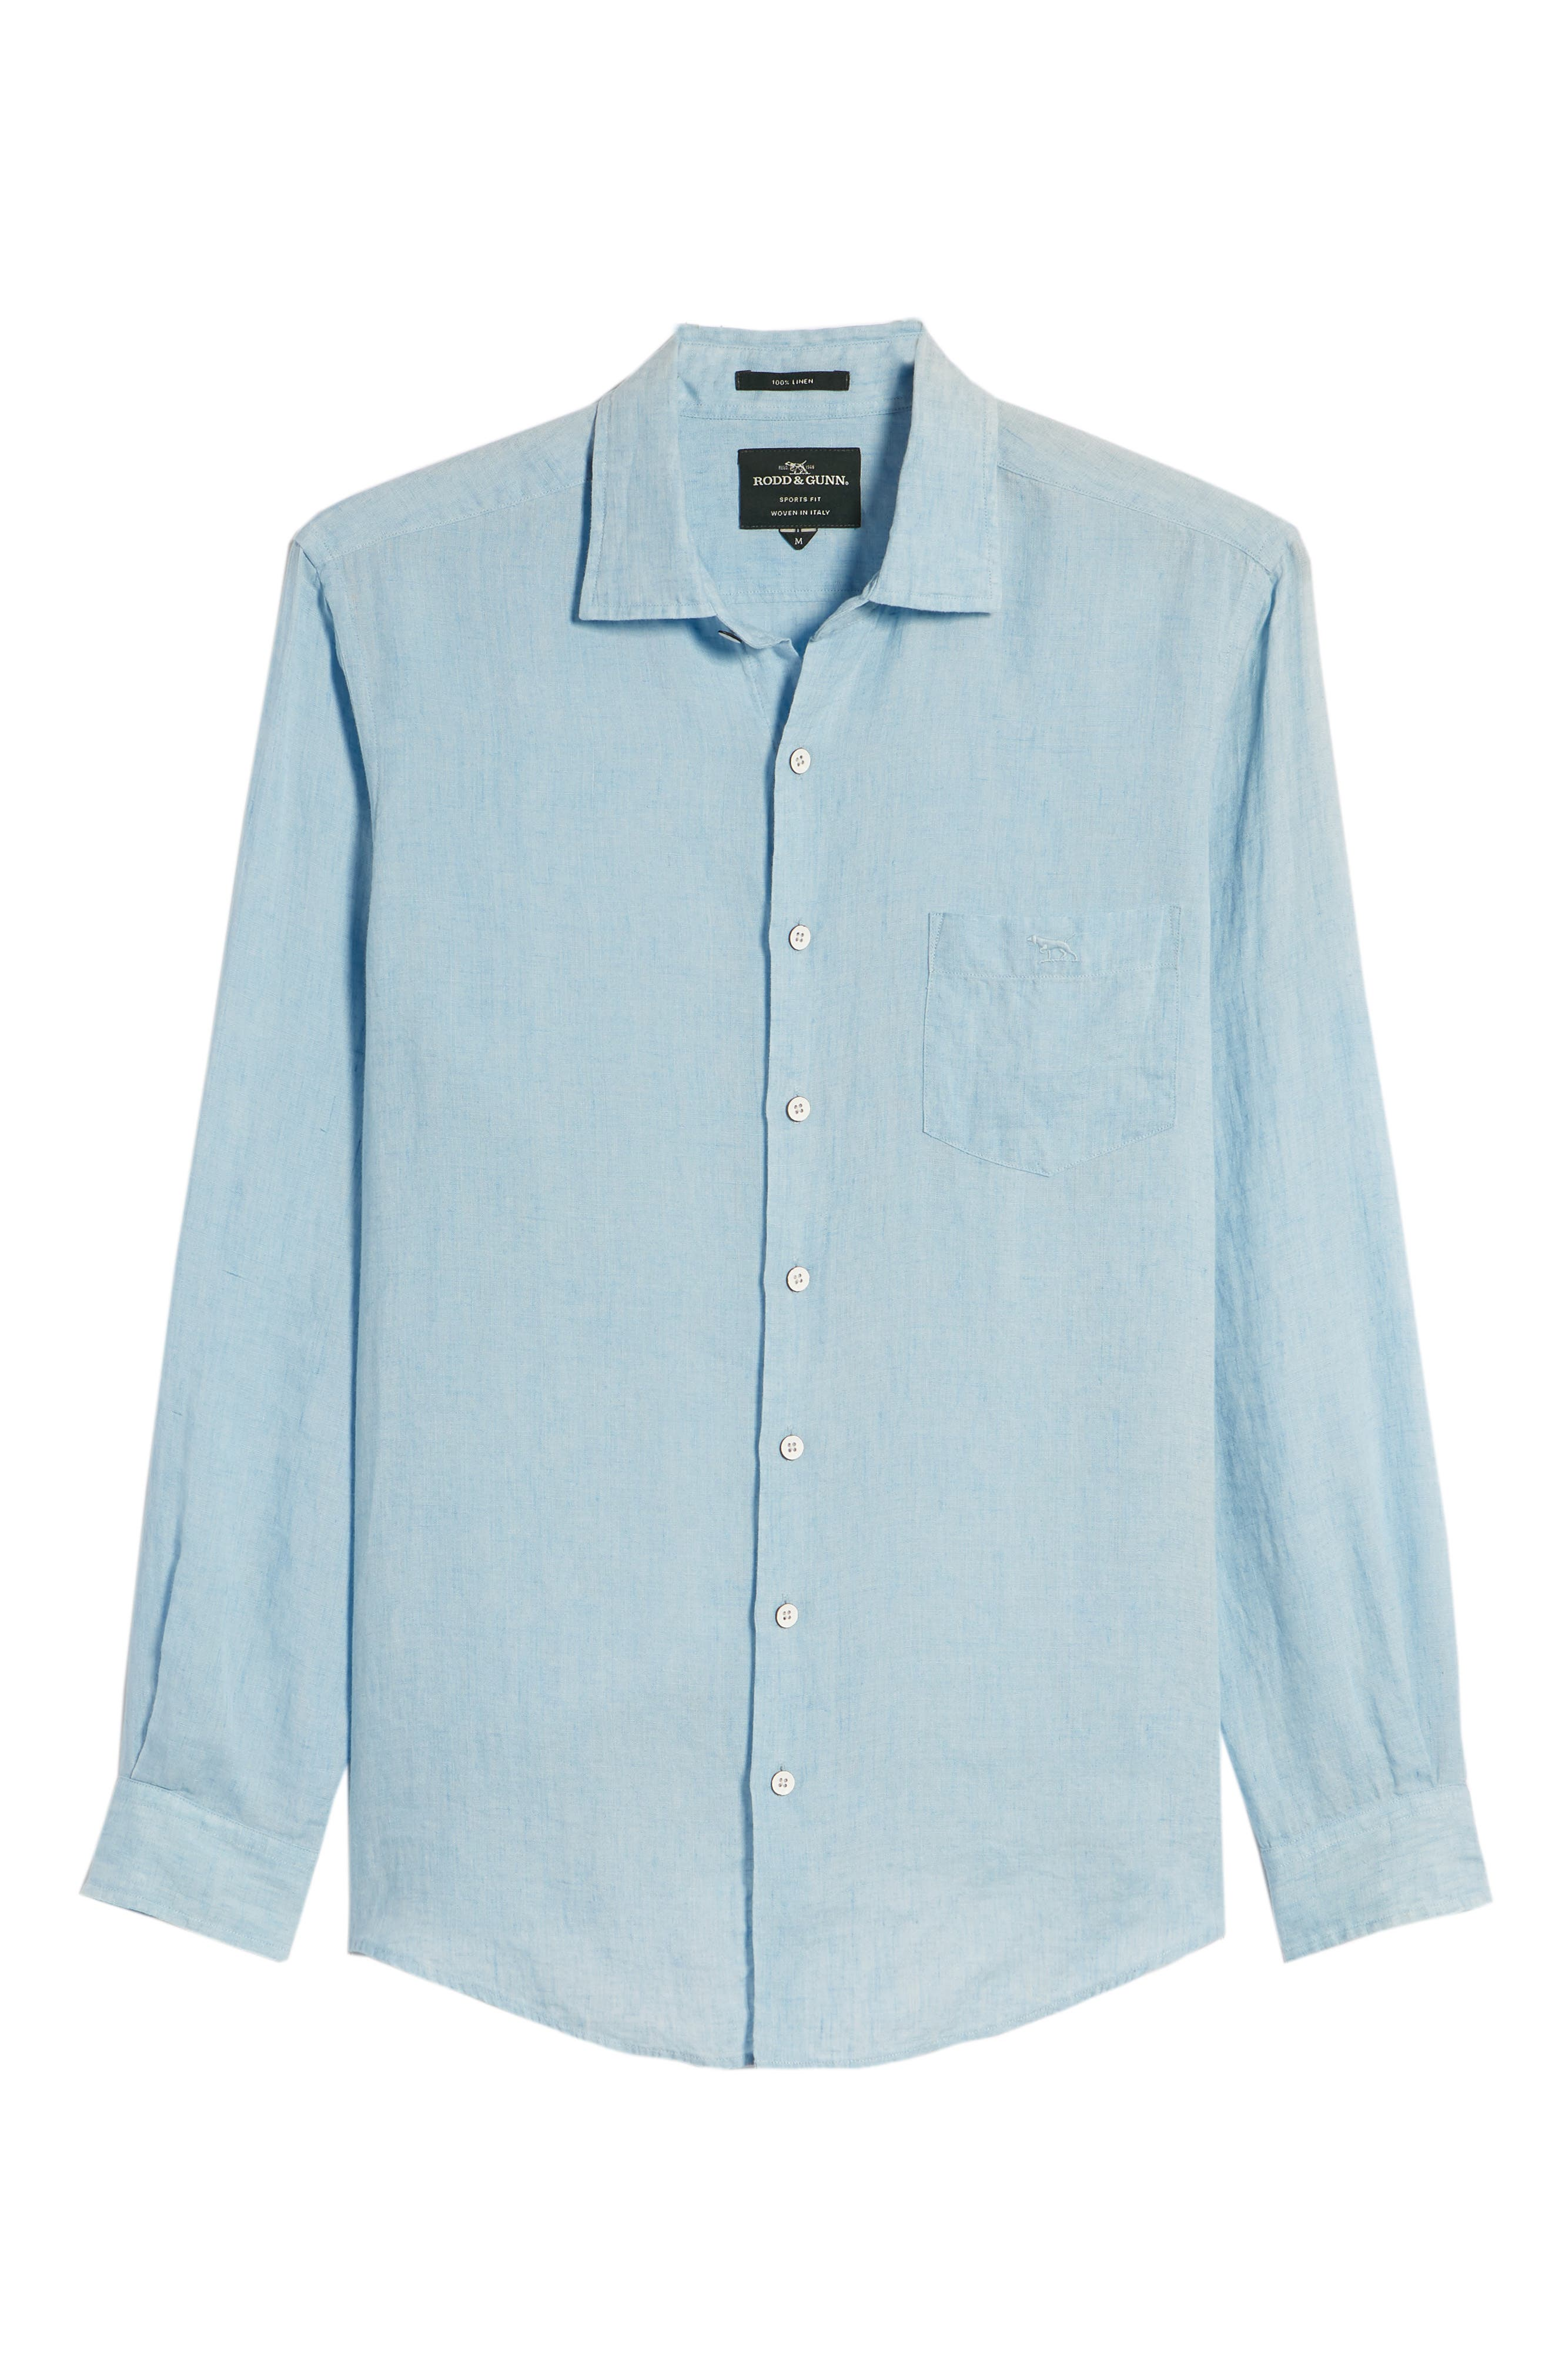 Harris Bay Regular Fit Linen Sport Shirt,                             Alternate thumbnail 6, color,                             STONEWASH